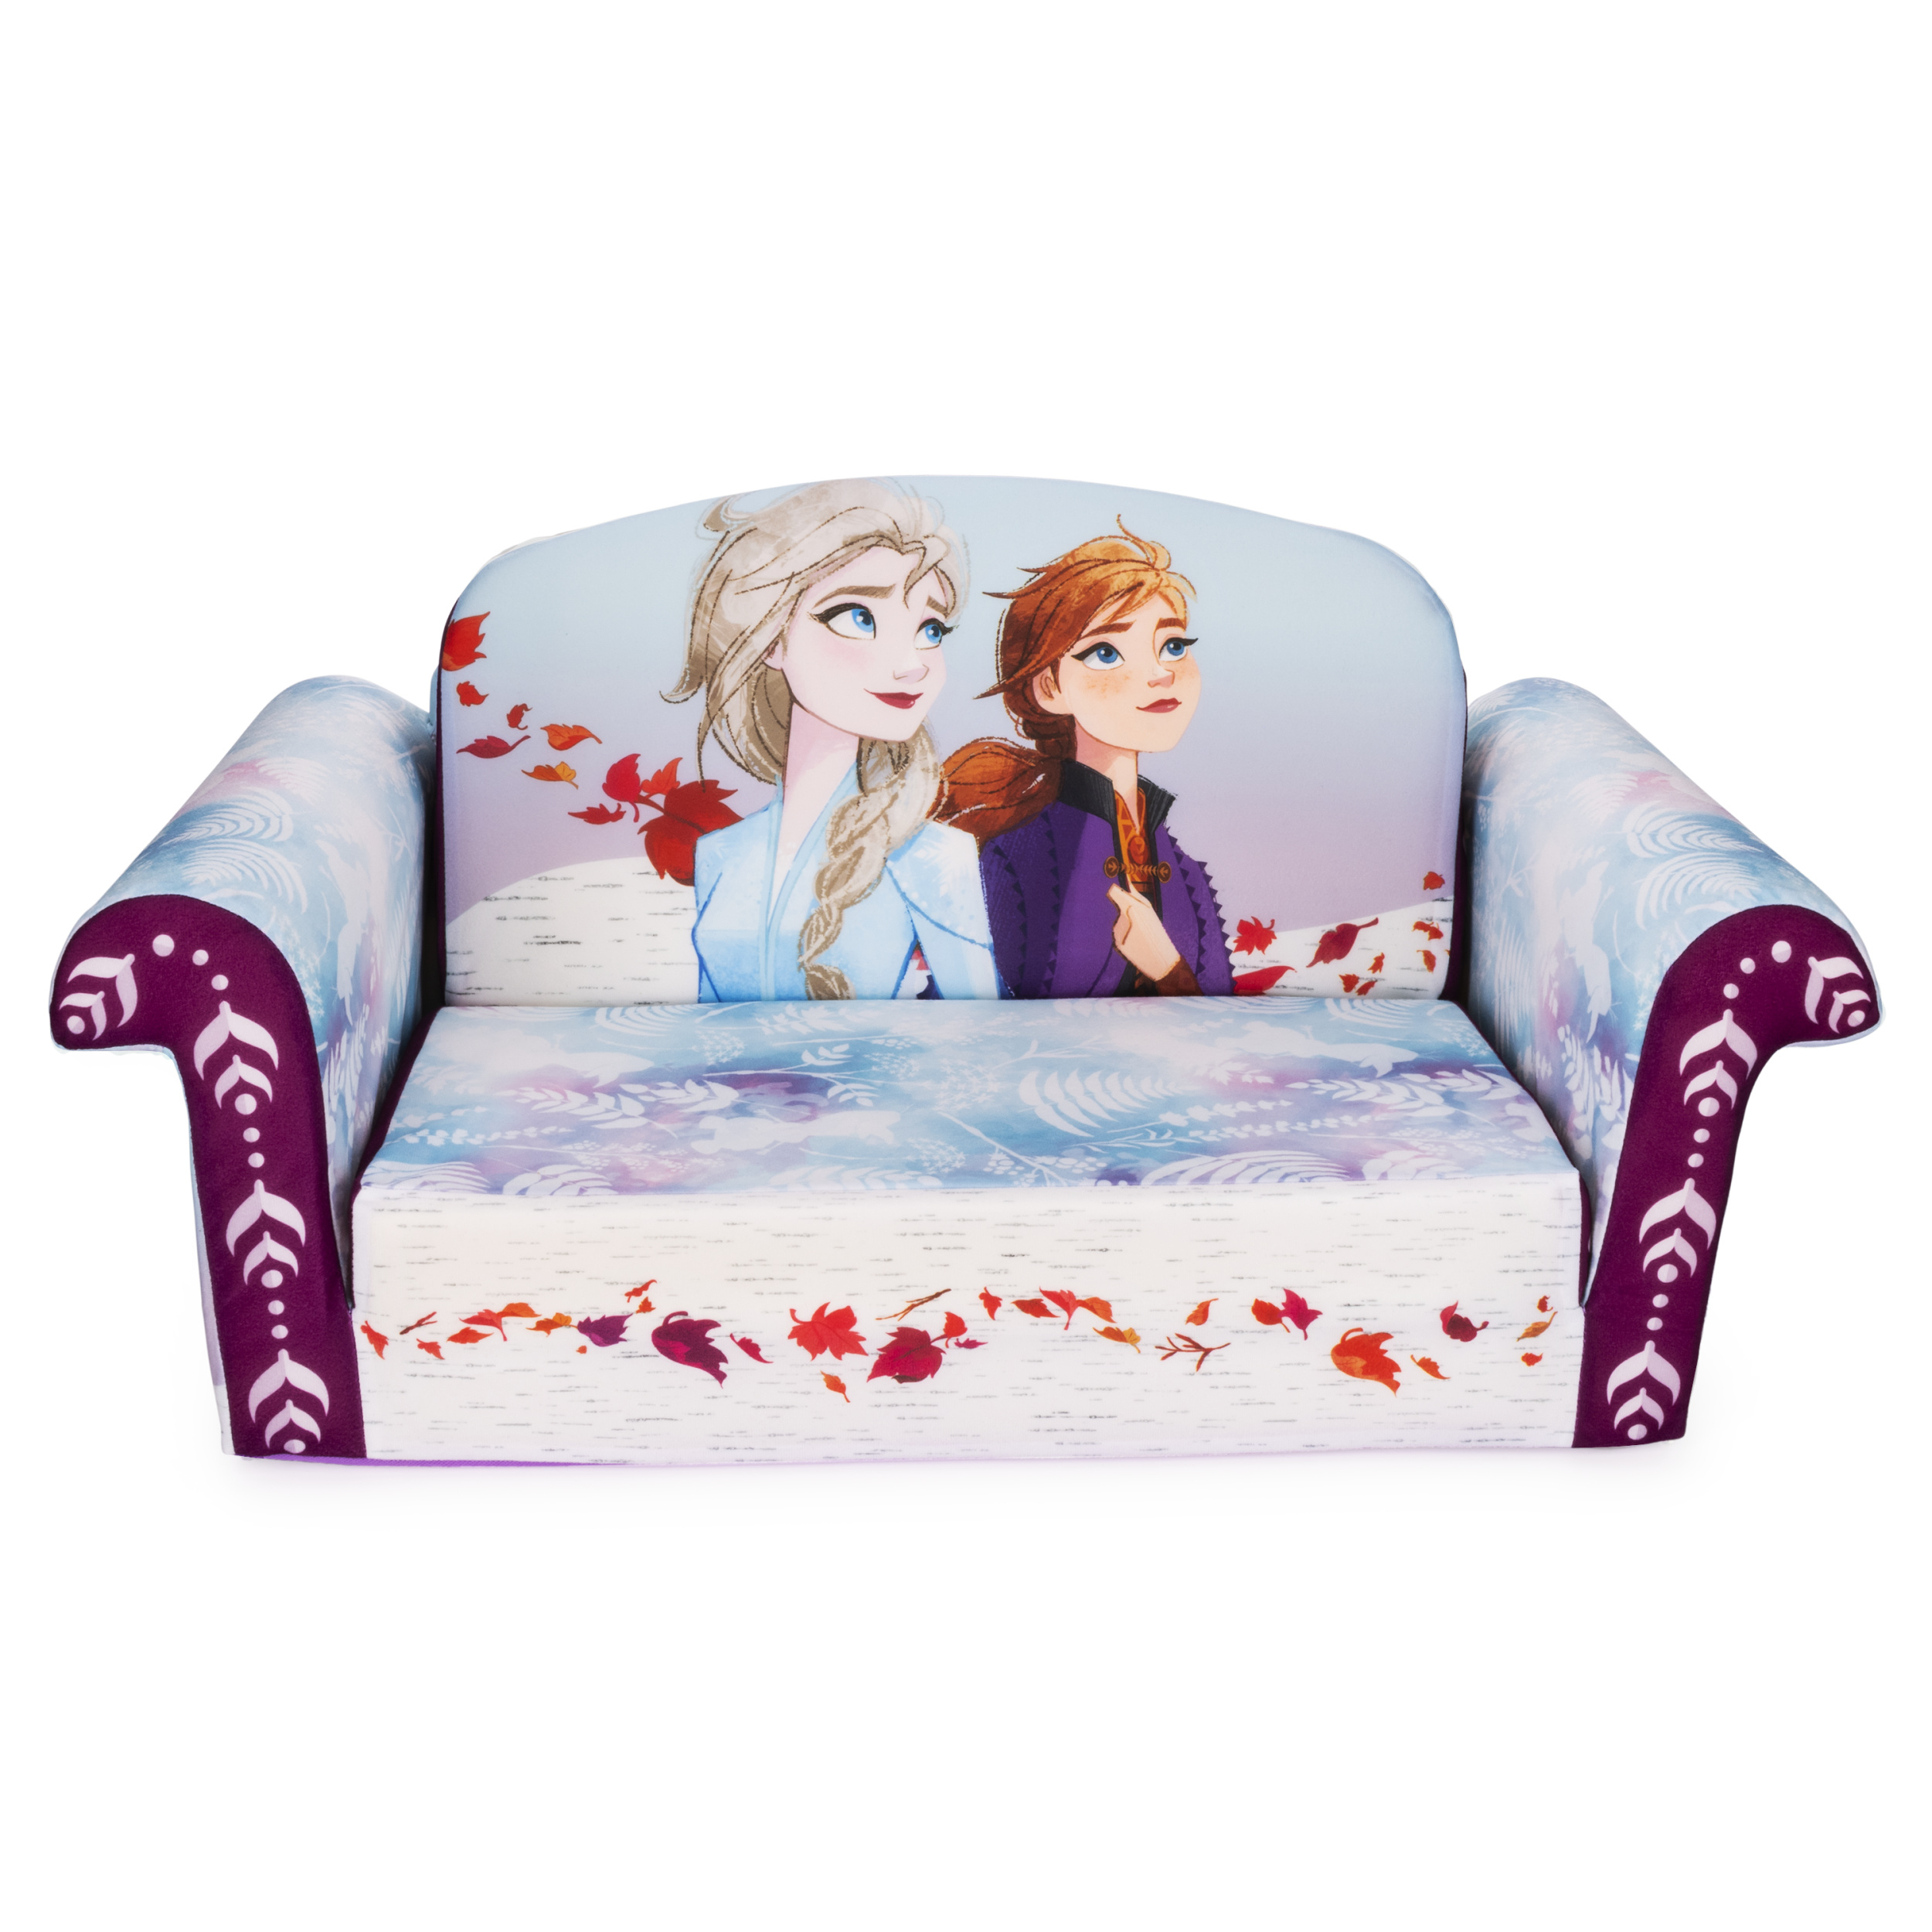 Marshmallow Furniture 2 In 1 Flip Open Couch Bed Kids Intended For Disney Sofa Chairs (View 1 of 15)